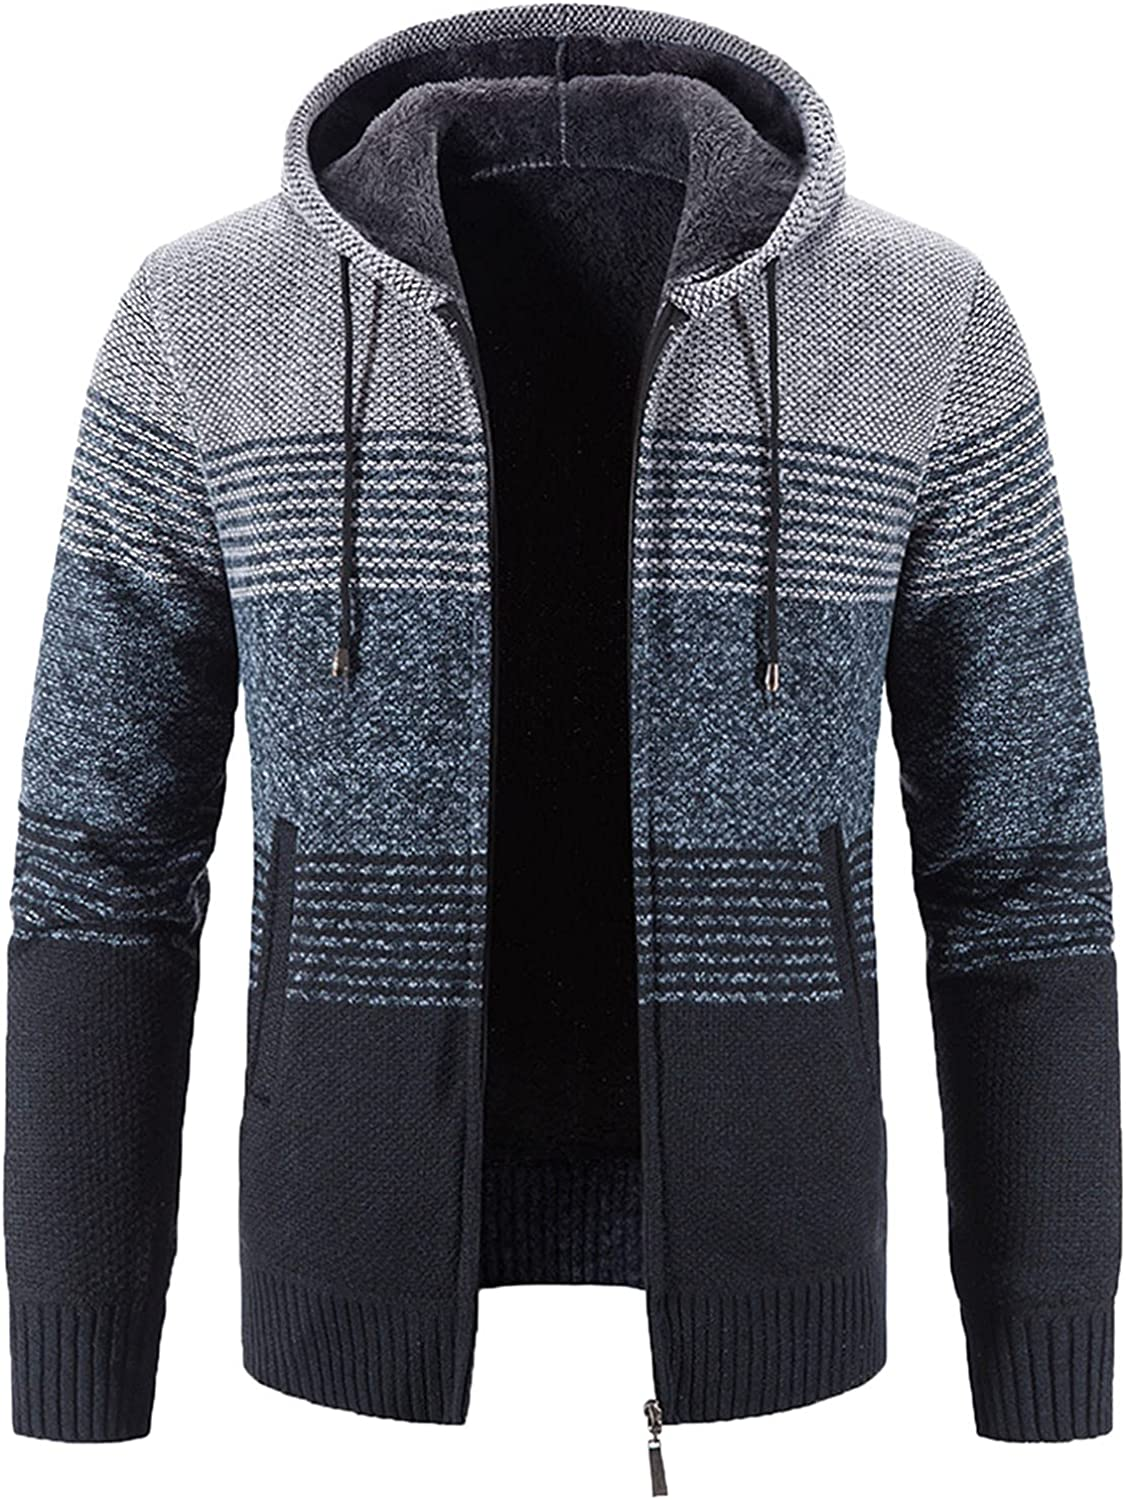 XXBR Cardigan Sweater for Mens, Fall Winter Knit Boho Patchwork Warm Jacket Zipper Button Open Front Casual Jumper Coat